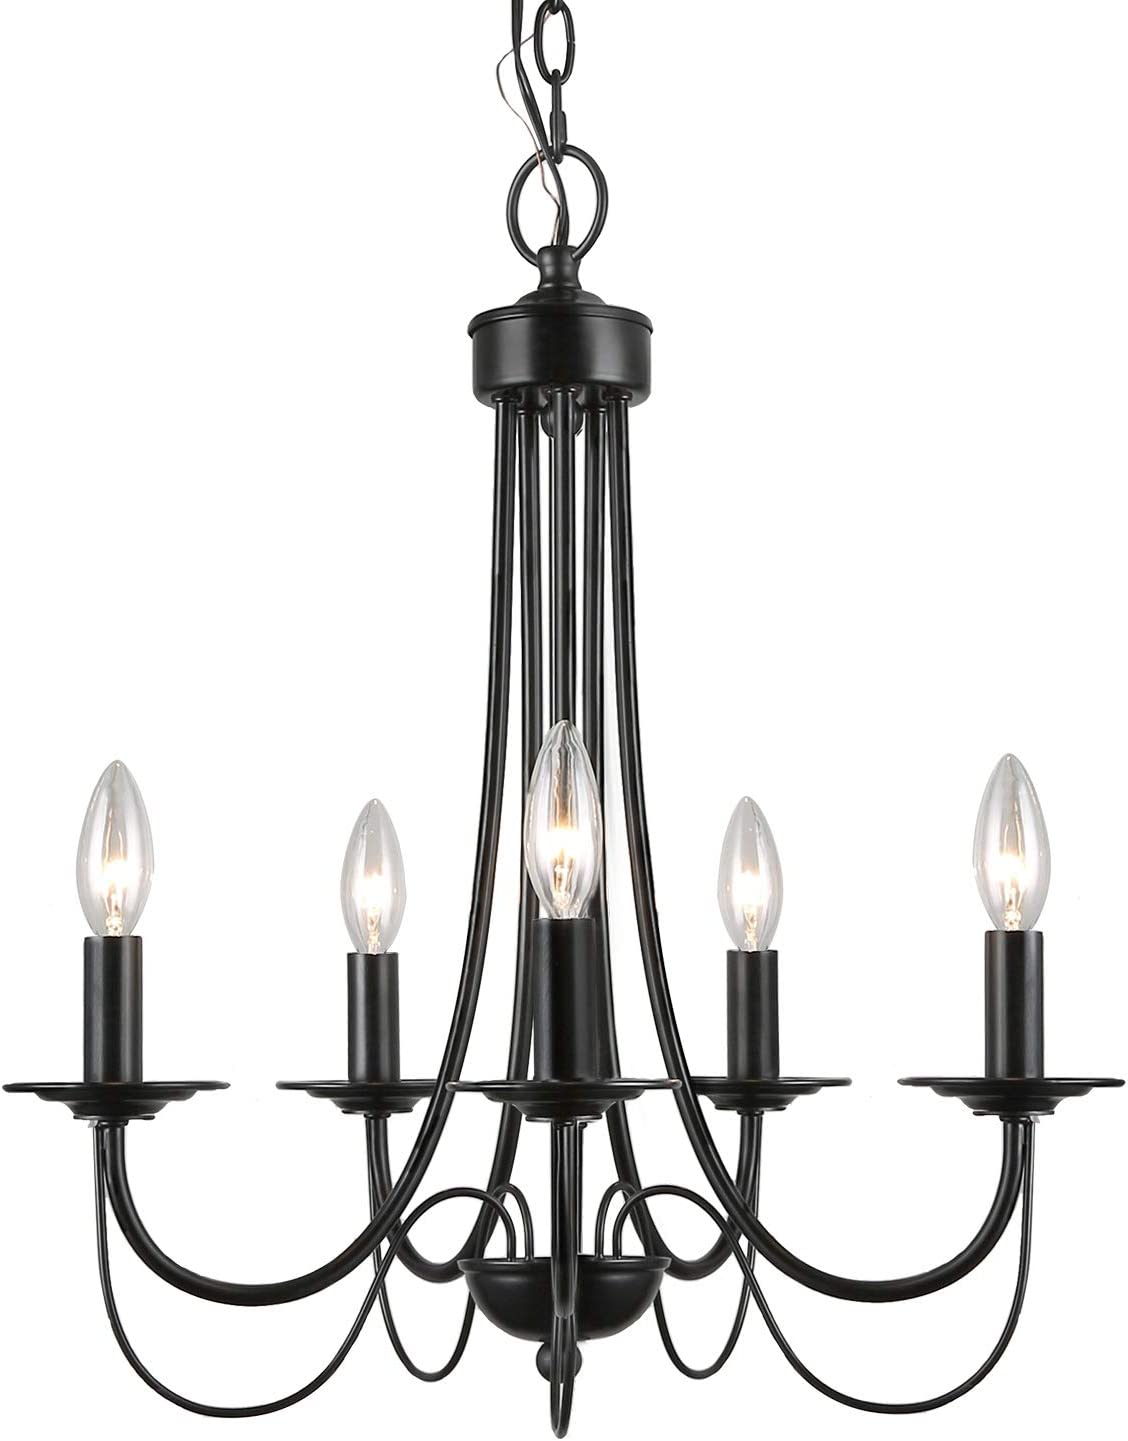 LALUZ, 5-Light 2-Layer Dining Chandeliers for Living Room, Bedroom, Foyer and Kitchen, Black